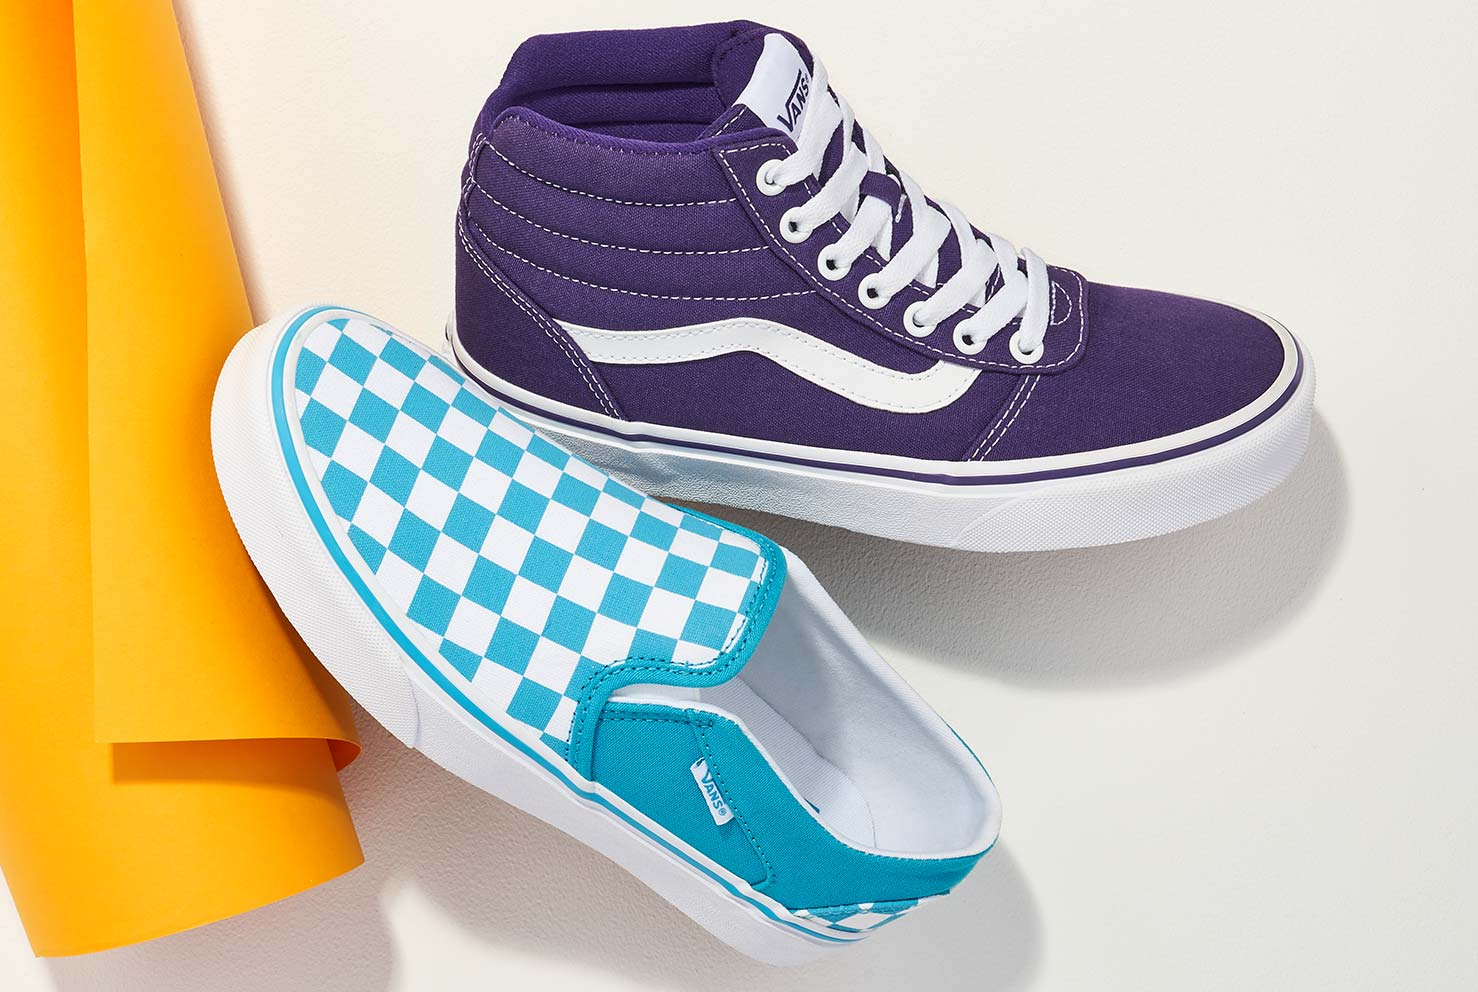 assorted colorful vans